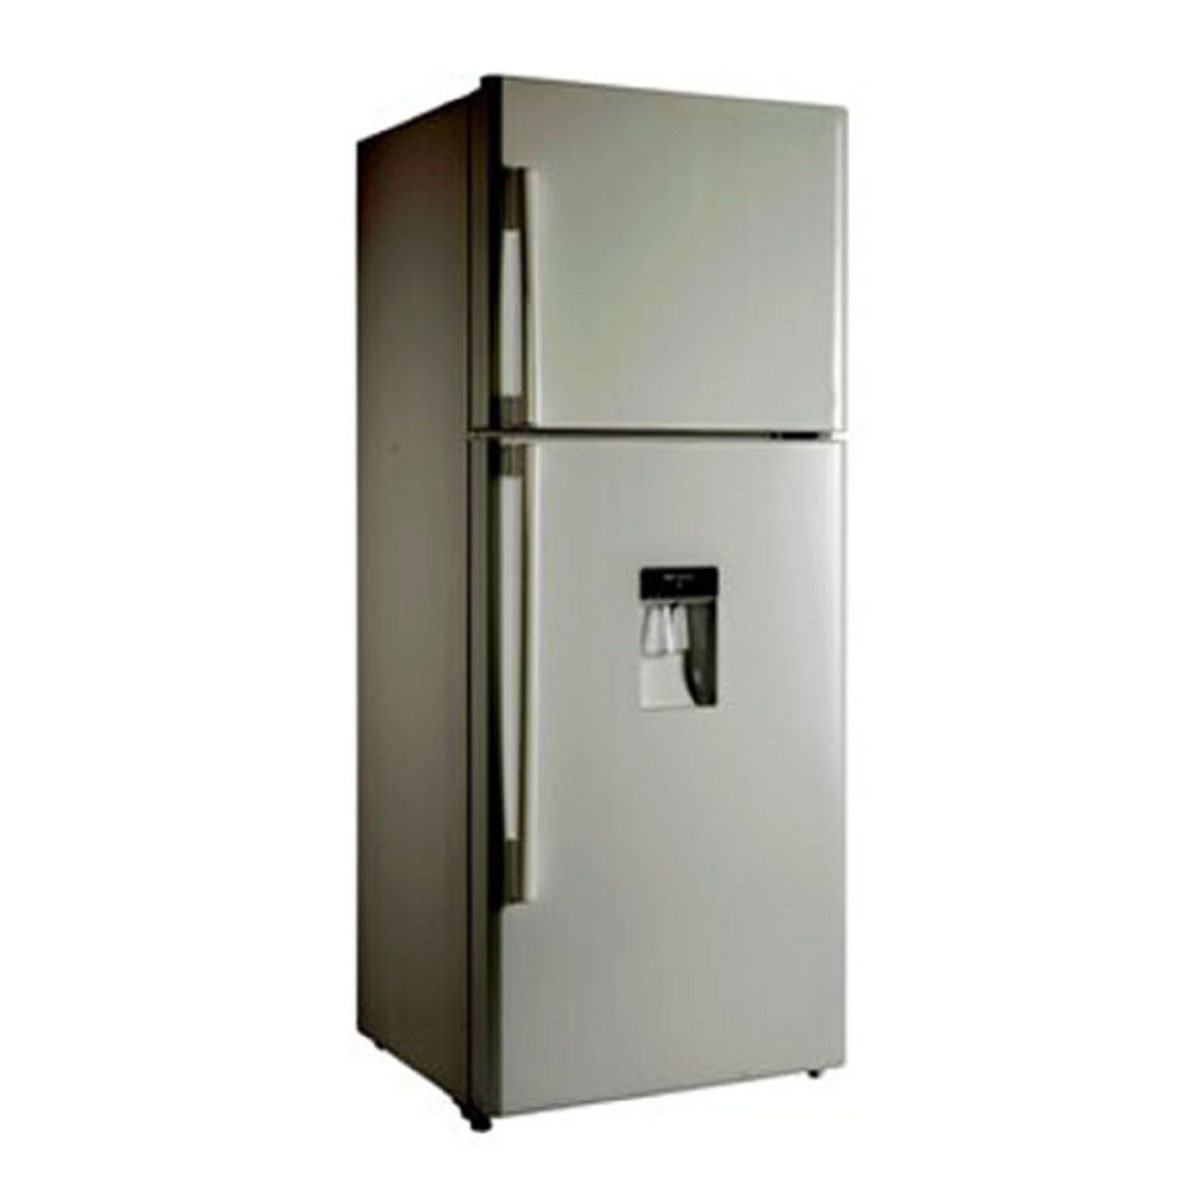 Changhong FTM520R02SD 520L Stainless Steel Fridge with Water Dispenser 27537